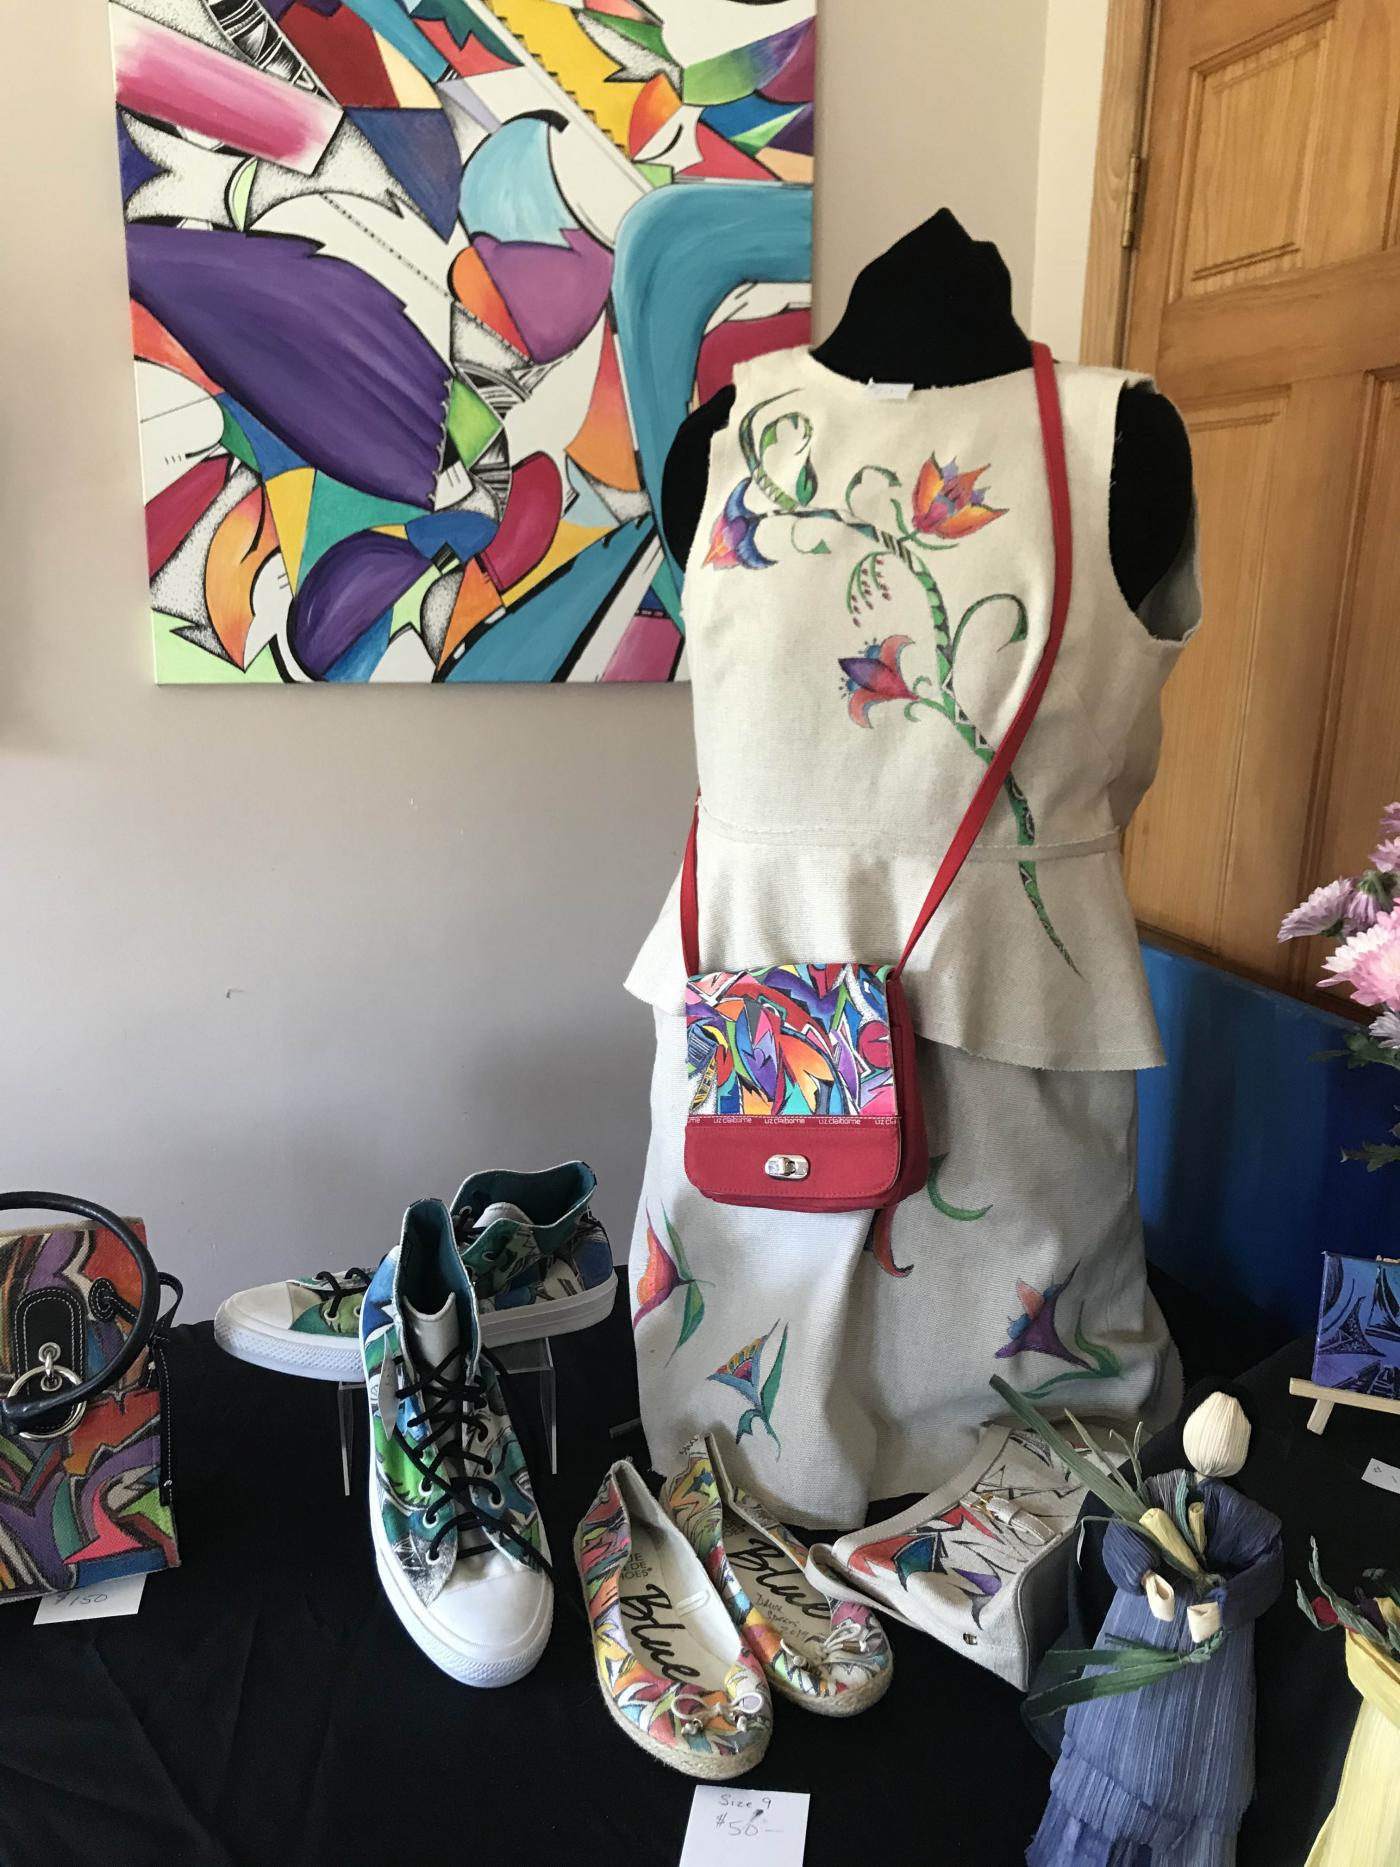 Display of artwork in a studio; colorful, graphic designs on canvas as well as a dress form, purse, and sneakers.